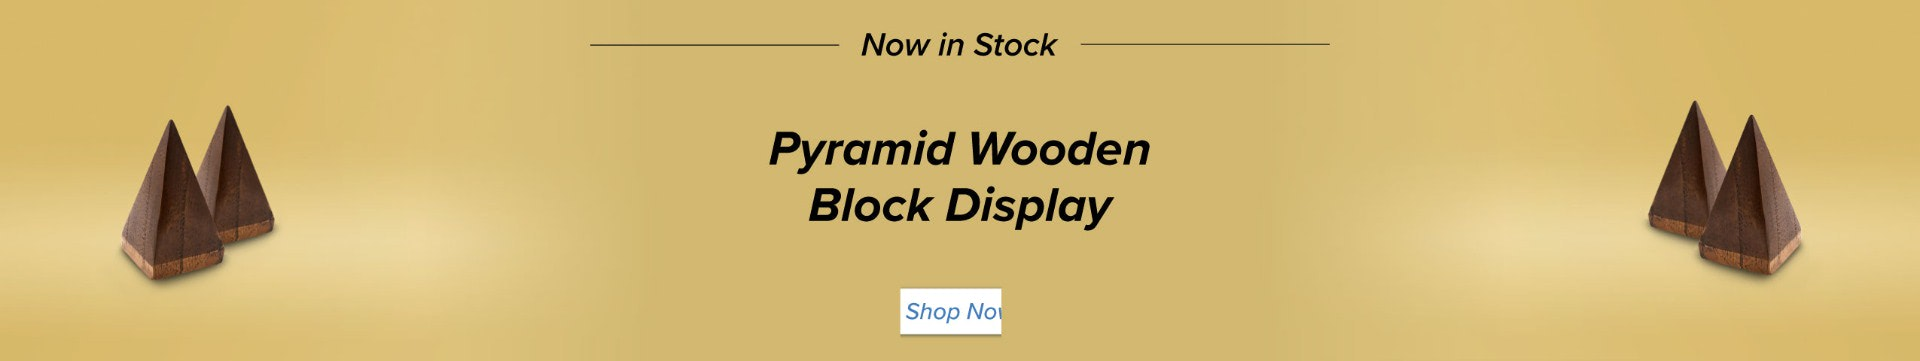 Pyramid Wooden Block